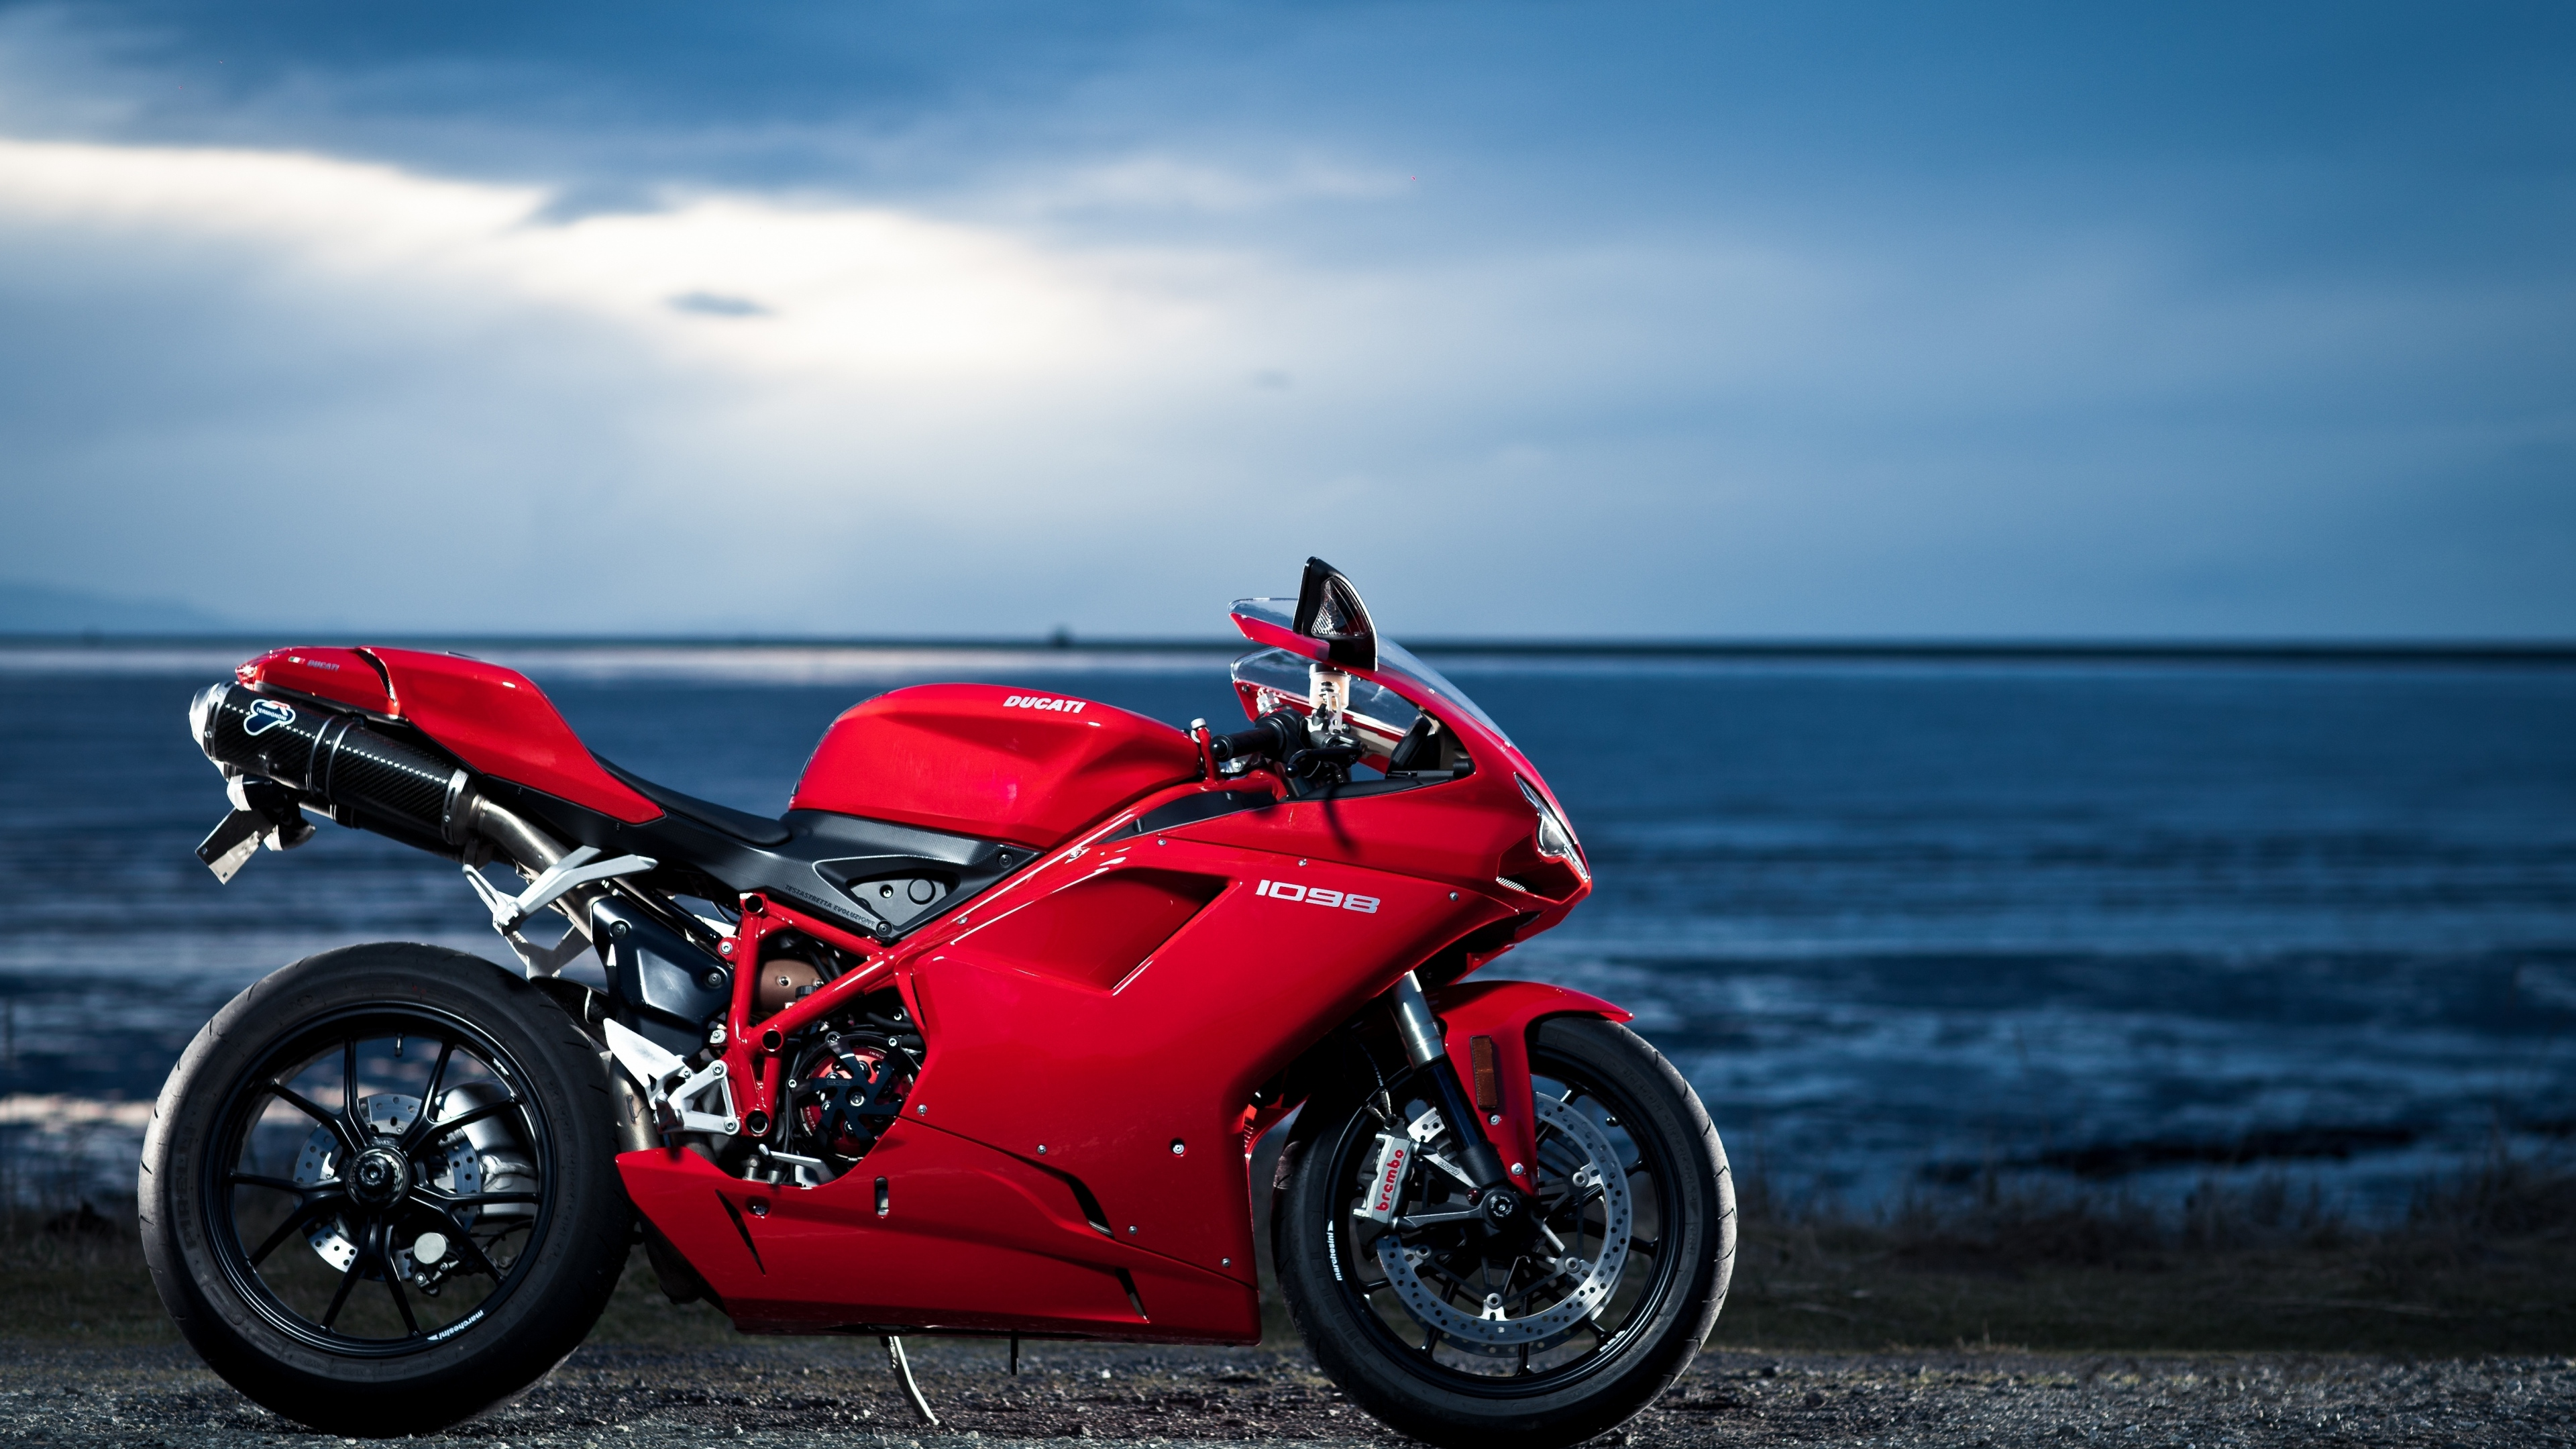 2560x1440 ducati 1098 4k 1440p resolution hd 4k wallpapers, images